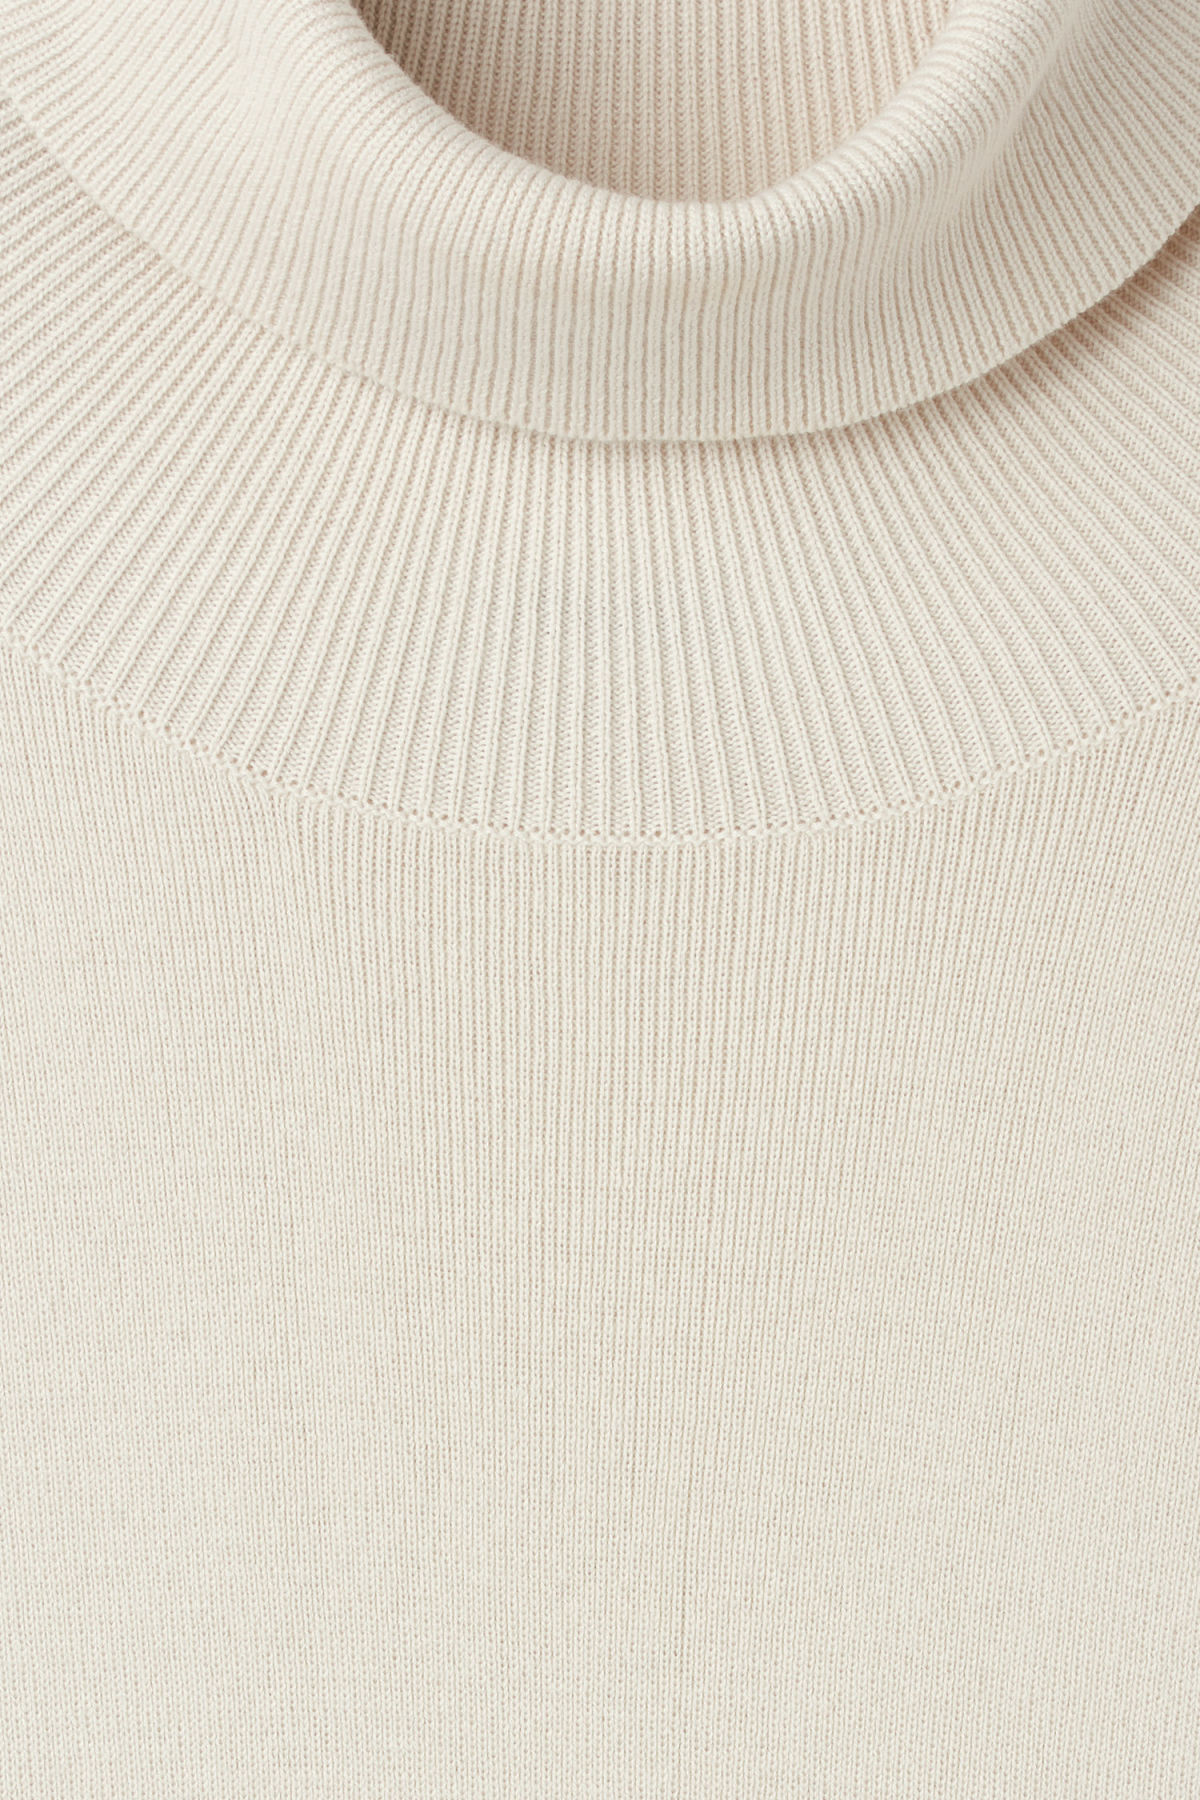 Detailed image of Weekday trey turtleneck sweater in brown